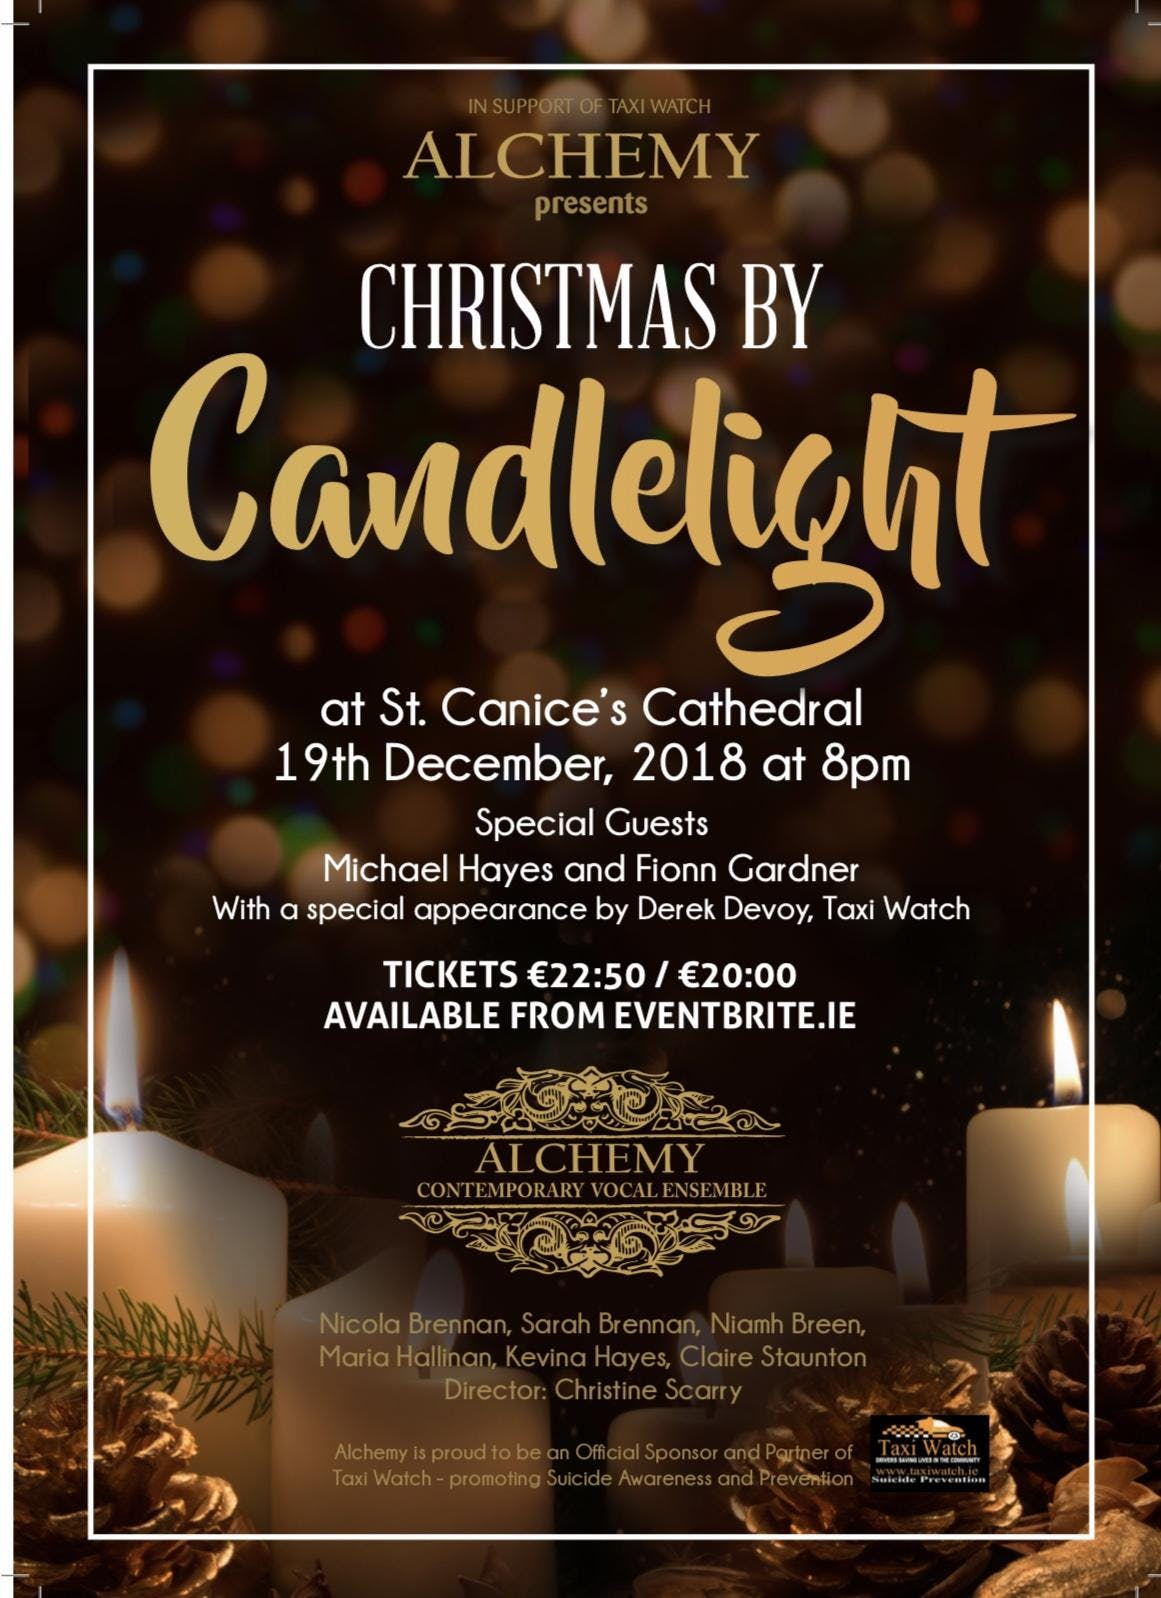 Alchemy presents CHRISTMAS BY CANDLELIGHT